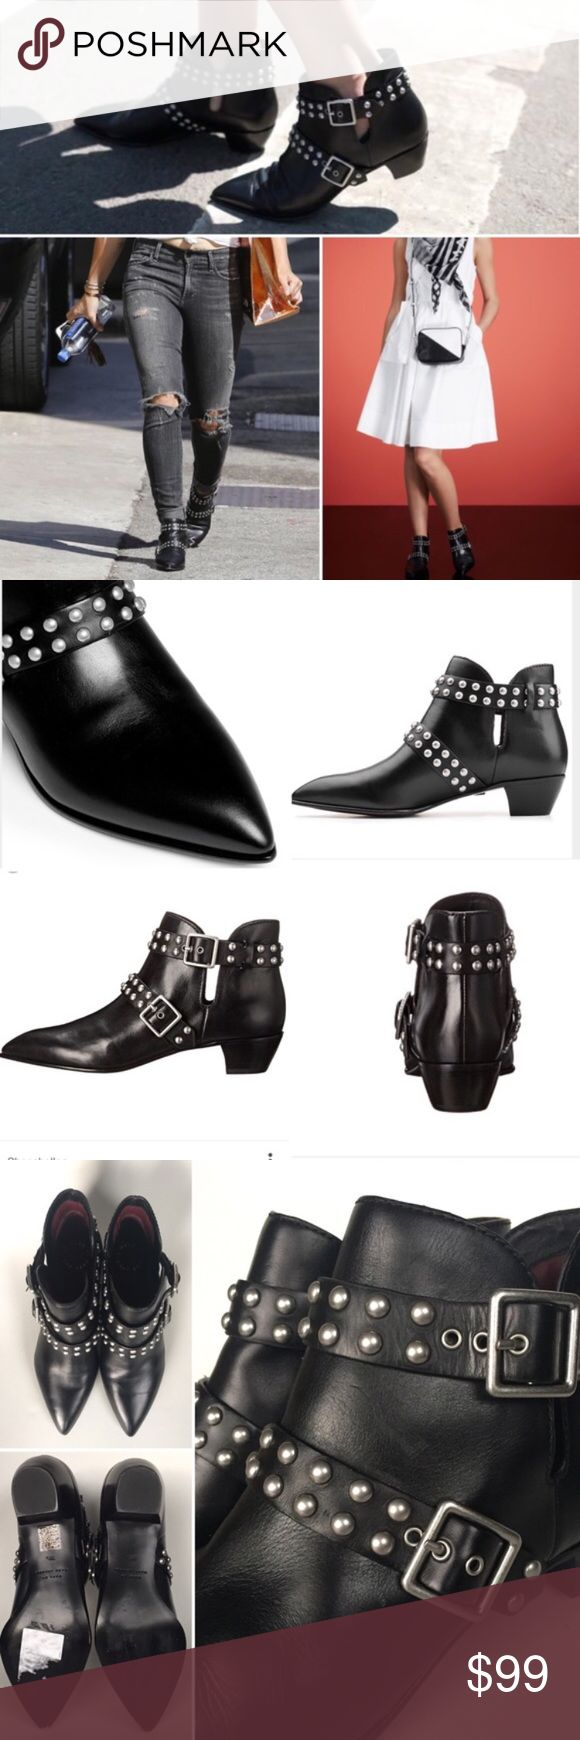 """Marc by Marc Jacob// Studded Leather Booties Supple Italian leather shapes these ankle boots that fuse smart retro-style design with a modern sensibility. Their sleek silhouette, pointy toe and studded straps will sharpen casual wear and add an unexpected bit of attitude to dressier looks. 1 1/2"""" heel with 4"""" boot shaft. Adjustable straps with buckle closures. These were floor model and have practically no signs of wear. Tiny imperfection in the leather in between the straps noted in picture…"""